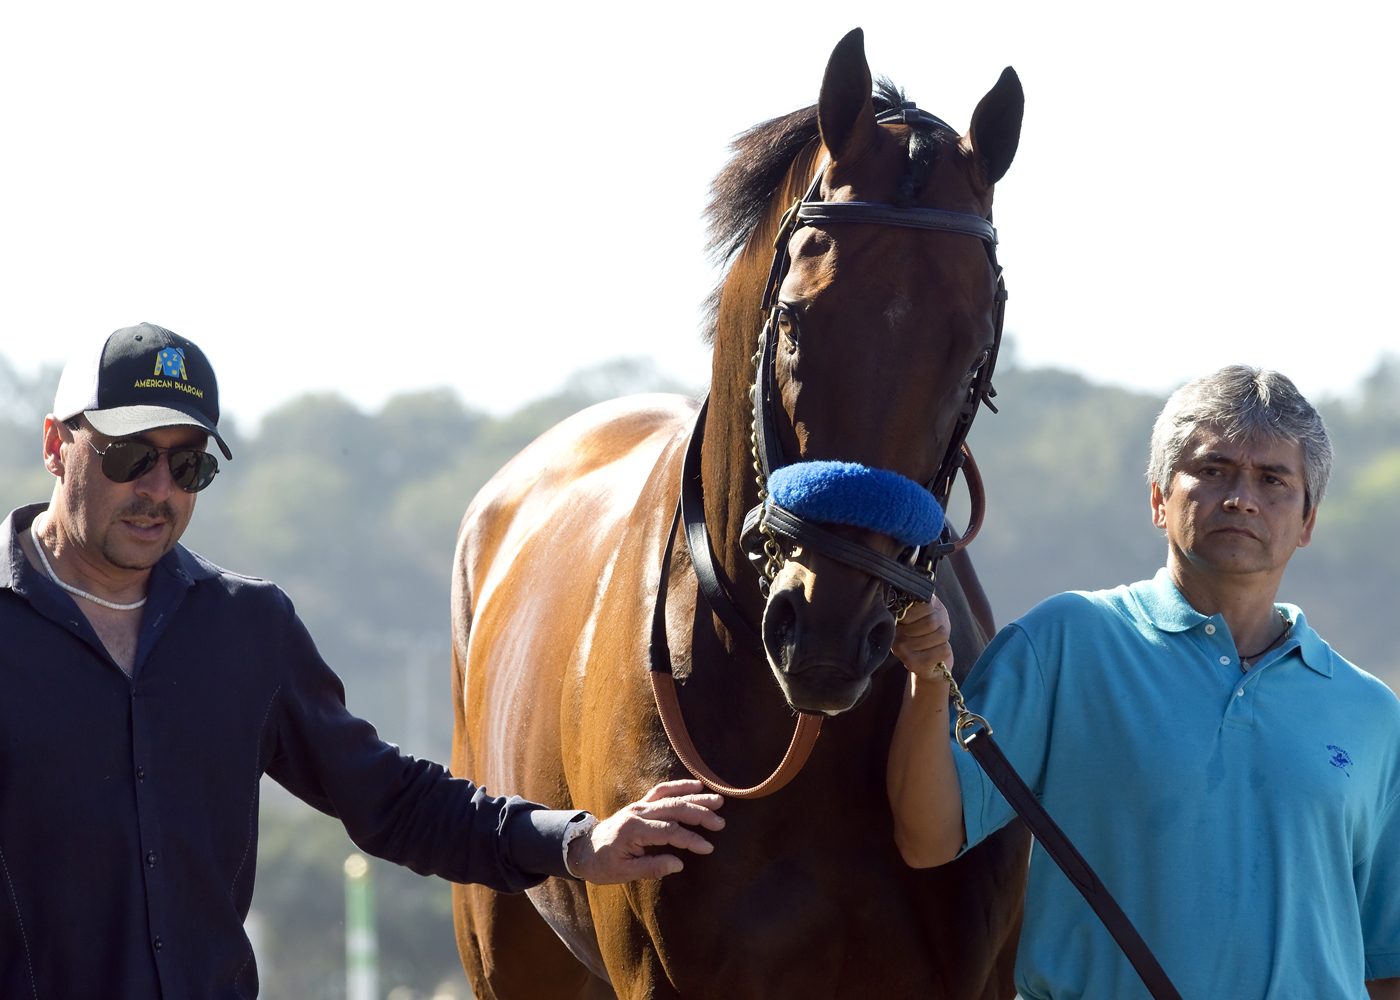 In this image provided by Benoit Photo, Triple Crown champ American Pharoah makes a special guest appearance between races Sunday, Sept. 6, 2015 at Del Mar Thoroughbred Club in Del Mar, Calif. (Benoit Photo via AP)